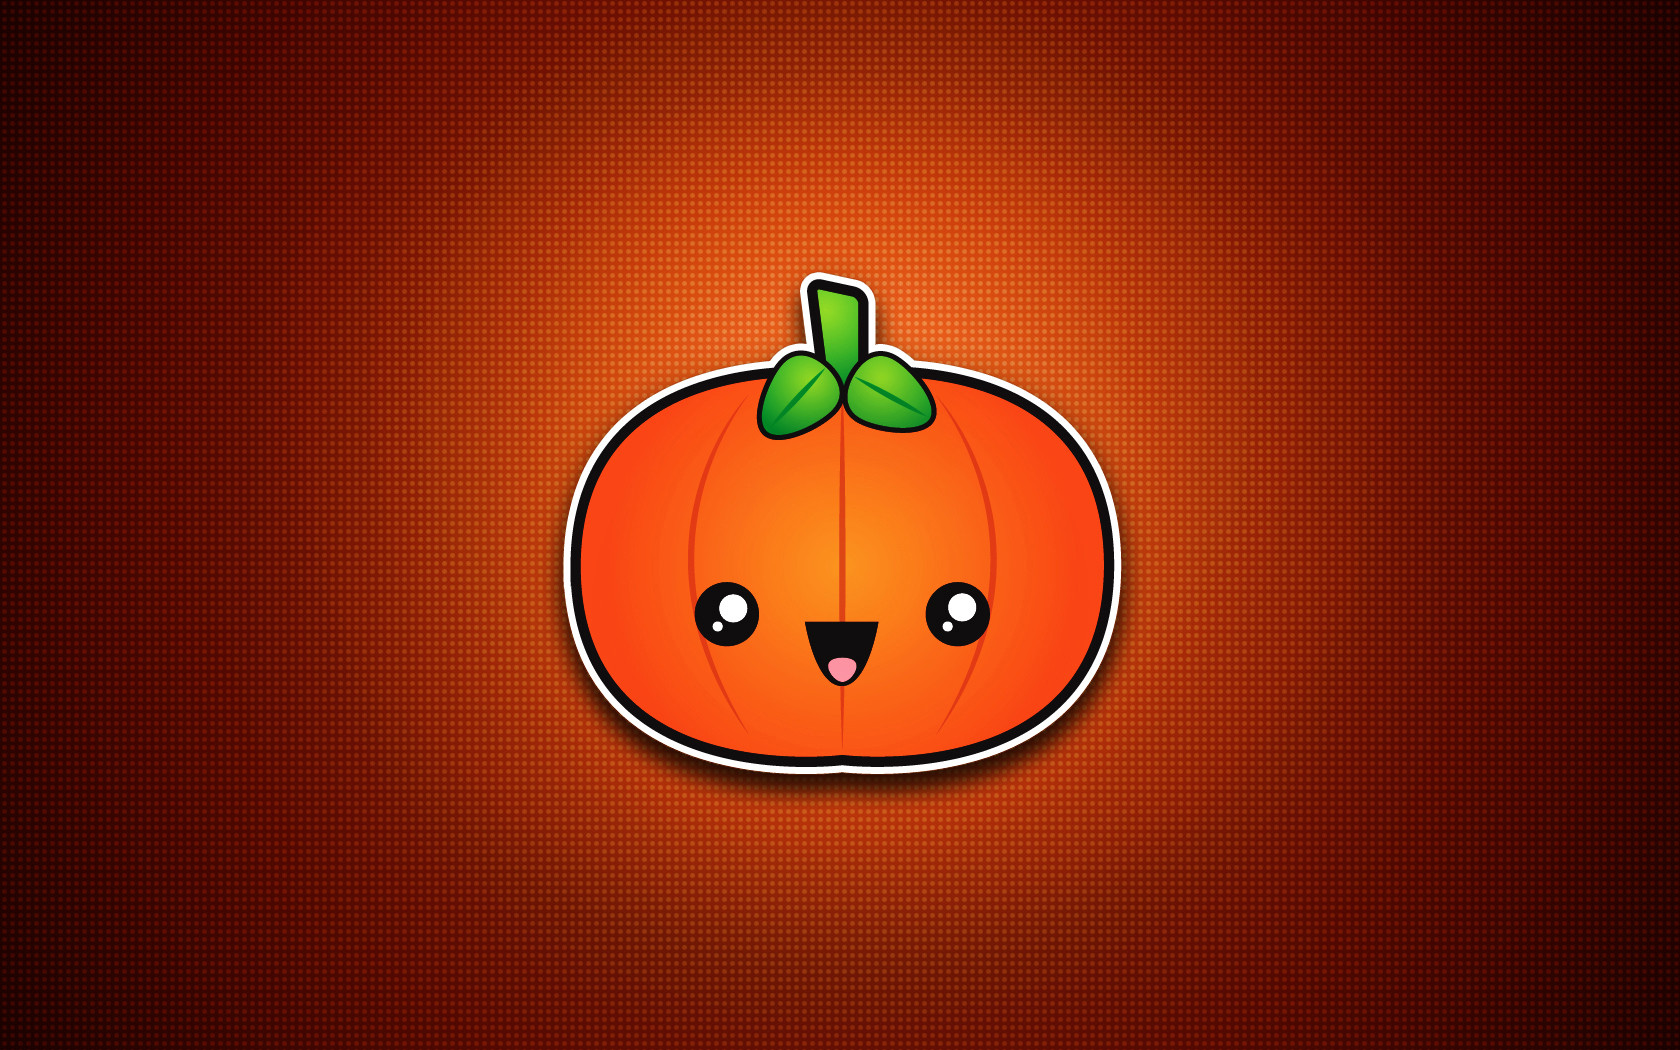 Halloween Pumpkin Wallpaper Hd.72 Hd Pumpkin Wallpaper On Wallpapersafari